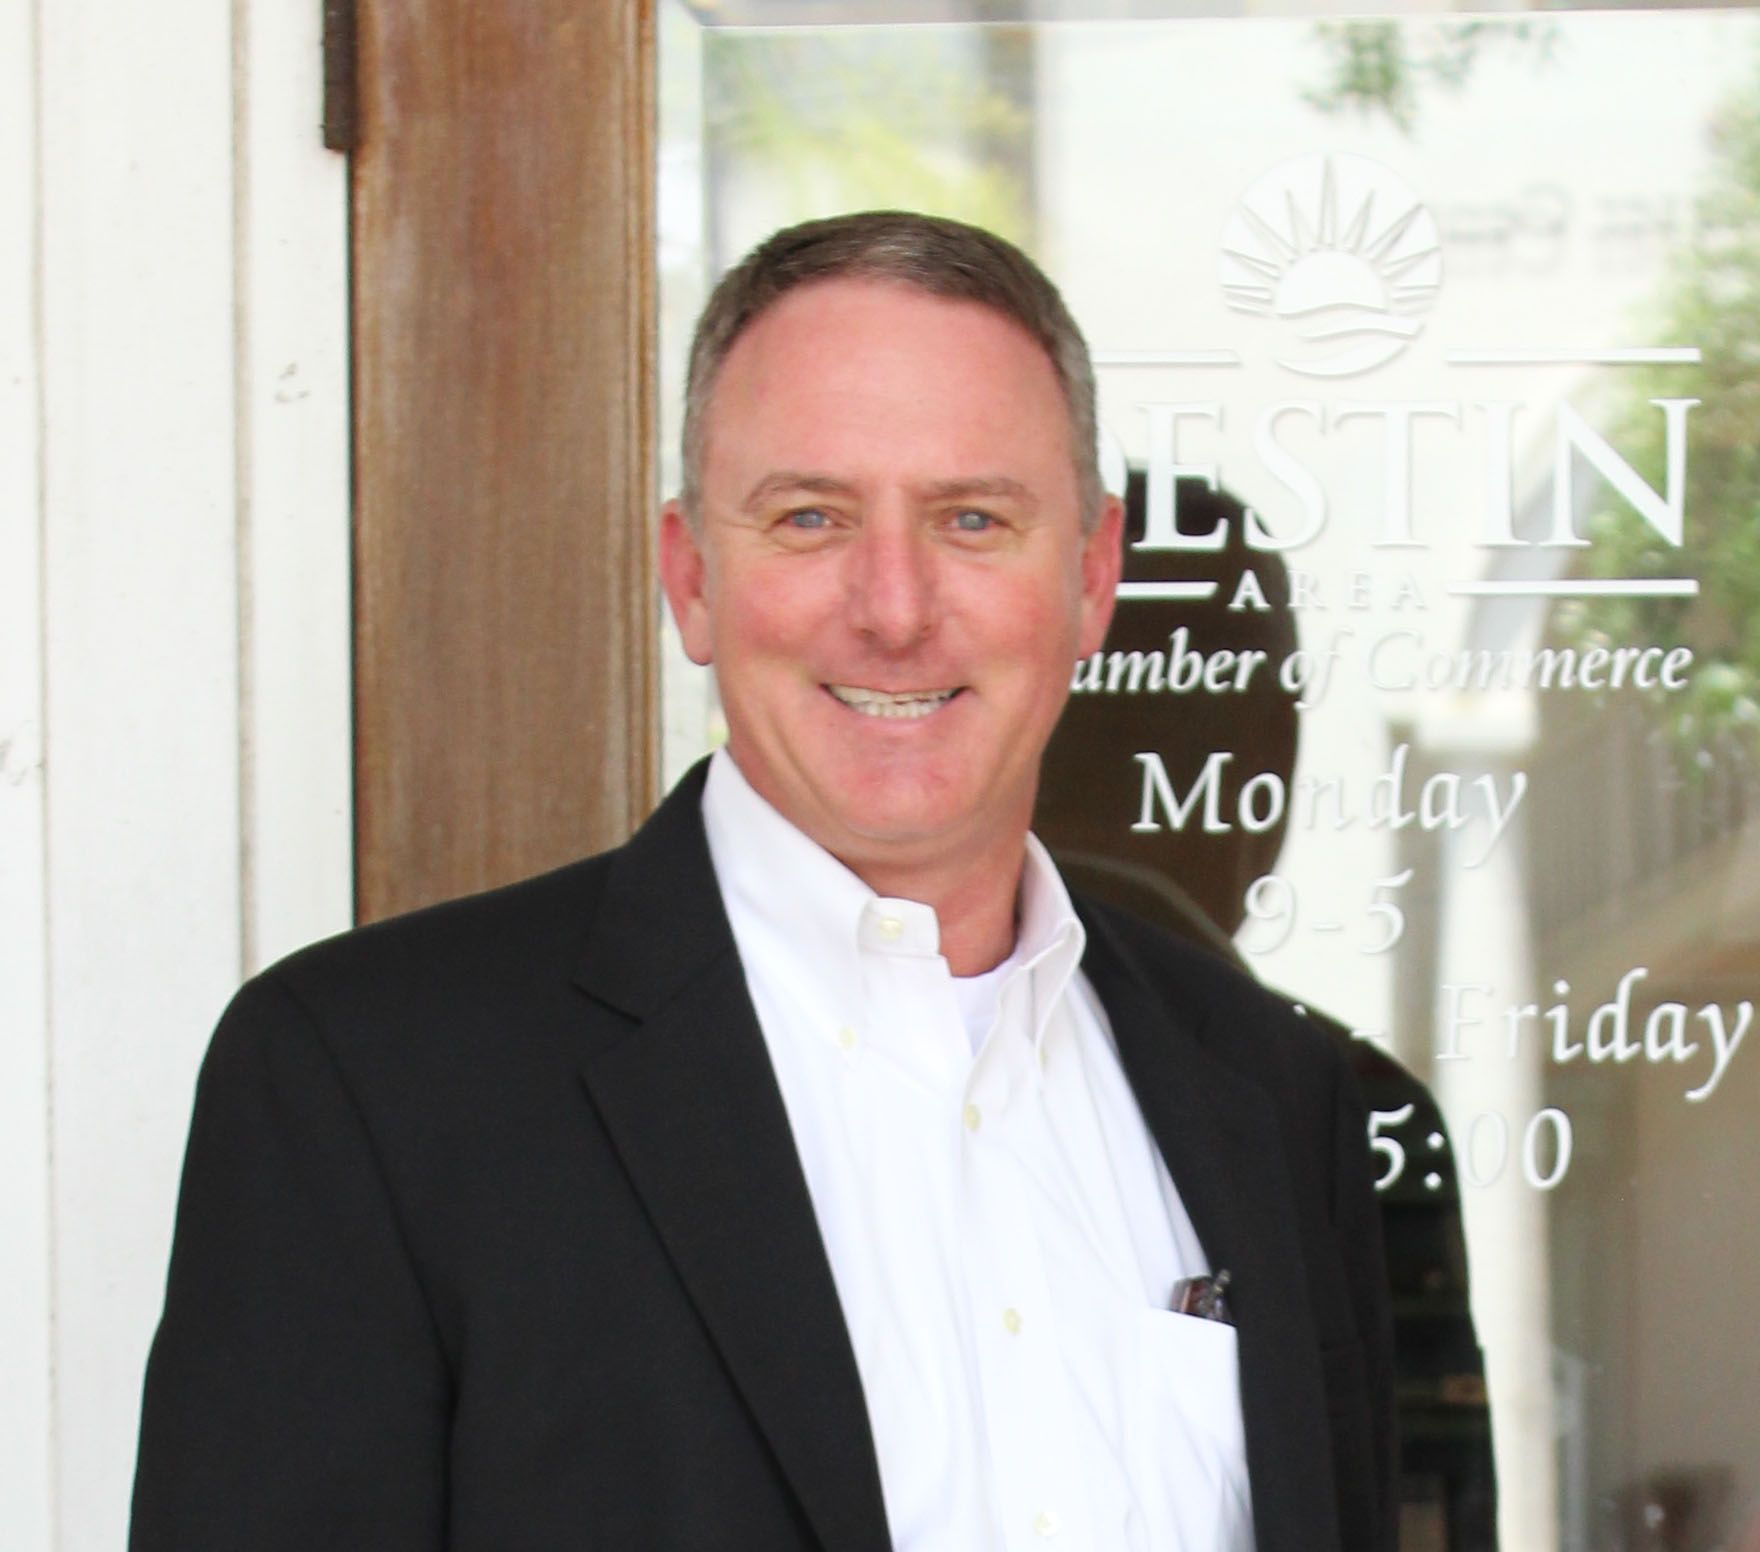 Destin Chamber of Commerce Shane A. Moody, CCE, FCCP